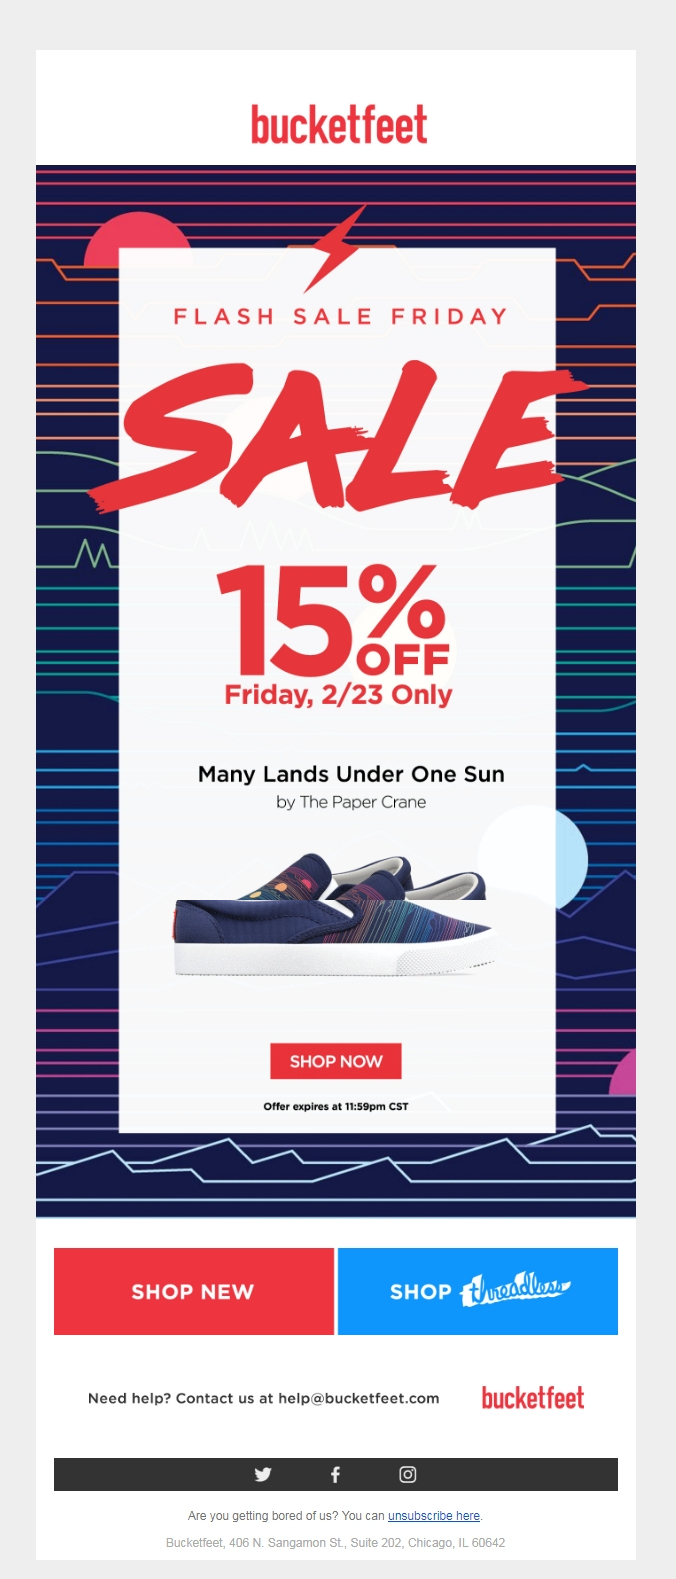 Bucketfeet-email-with-images-enabled